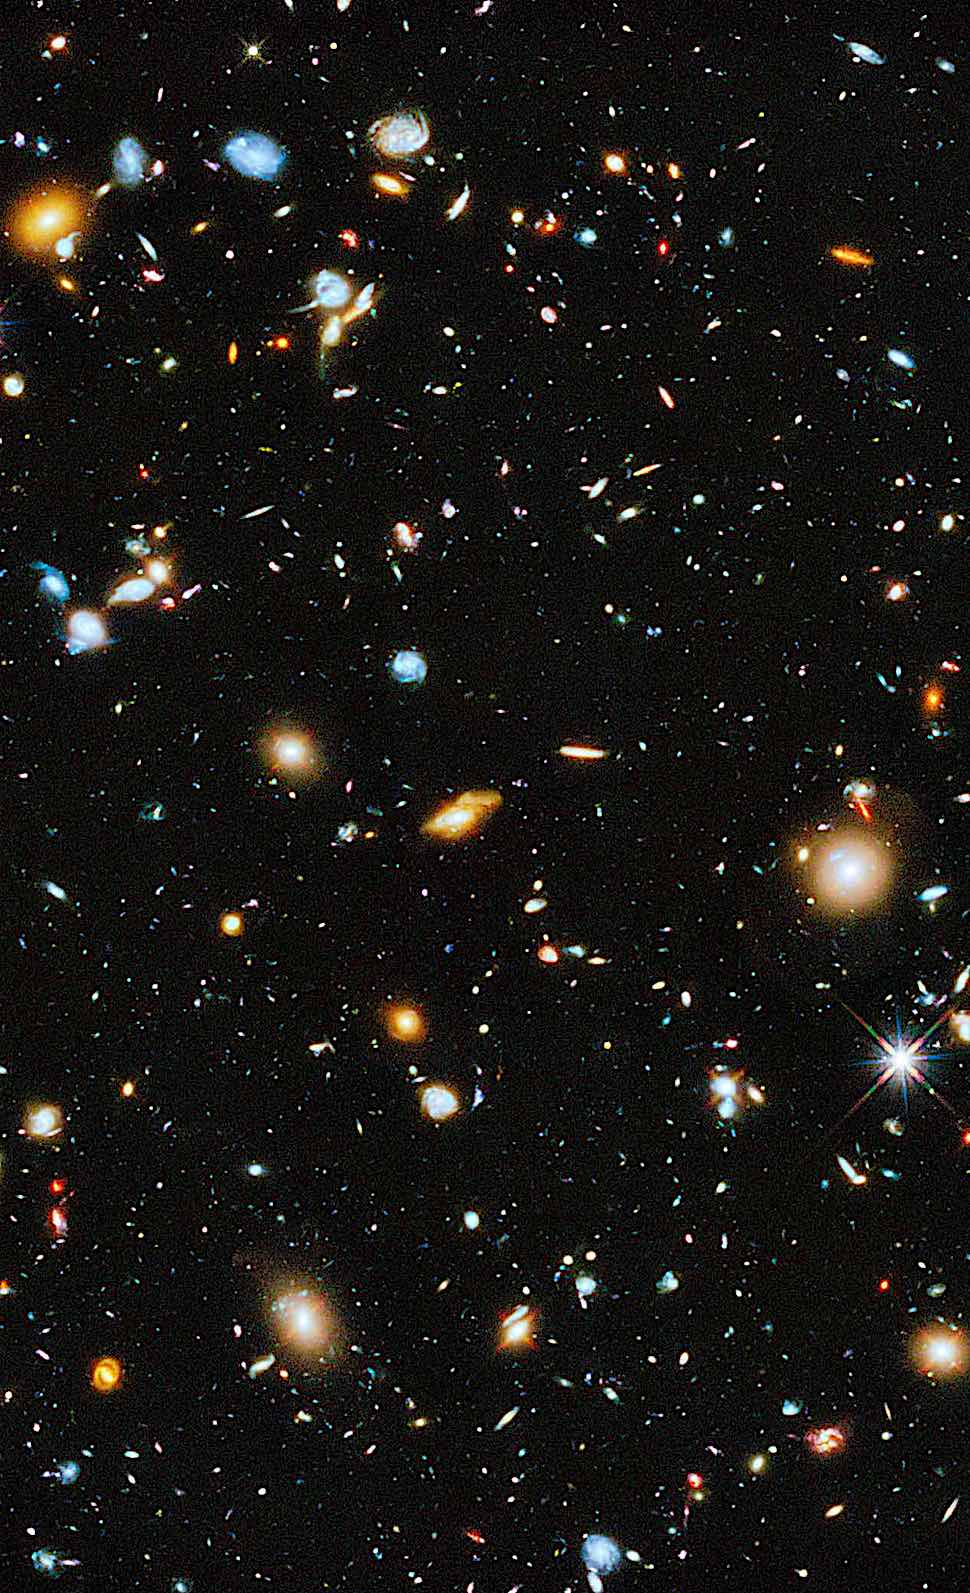 the Hubble telescope, a photograph of space